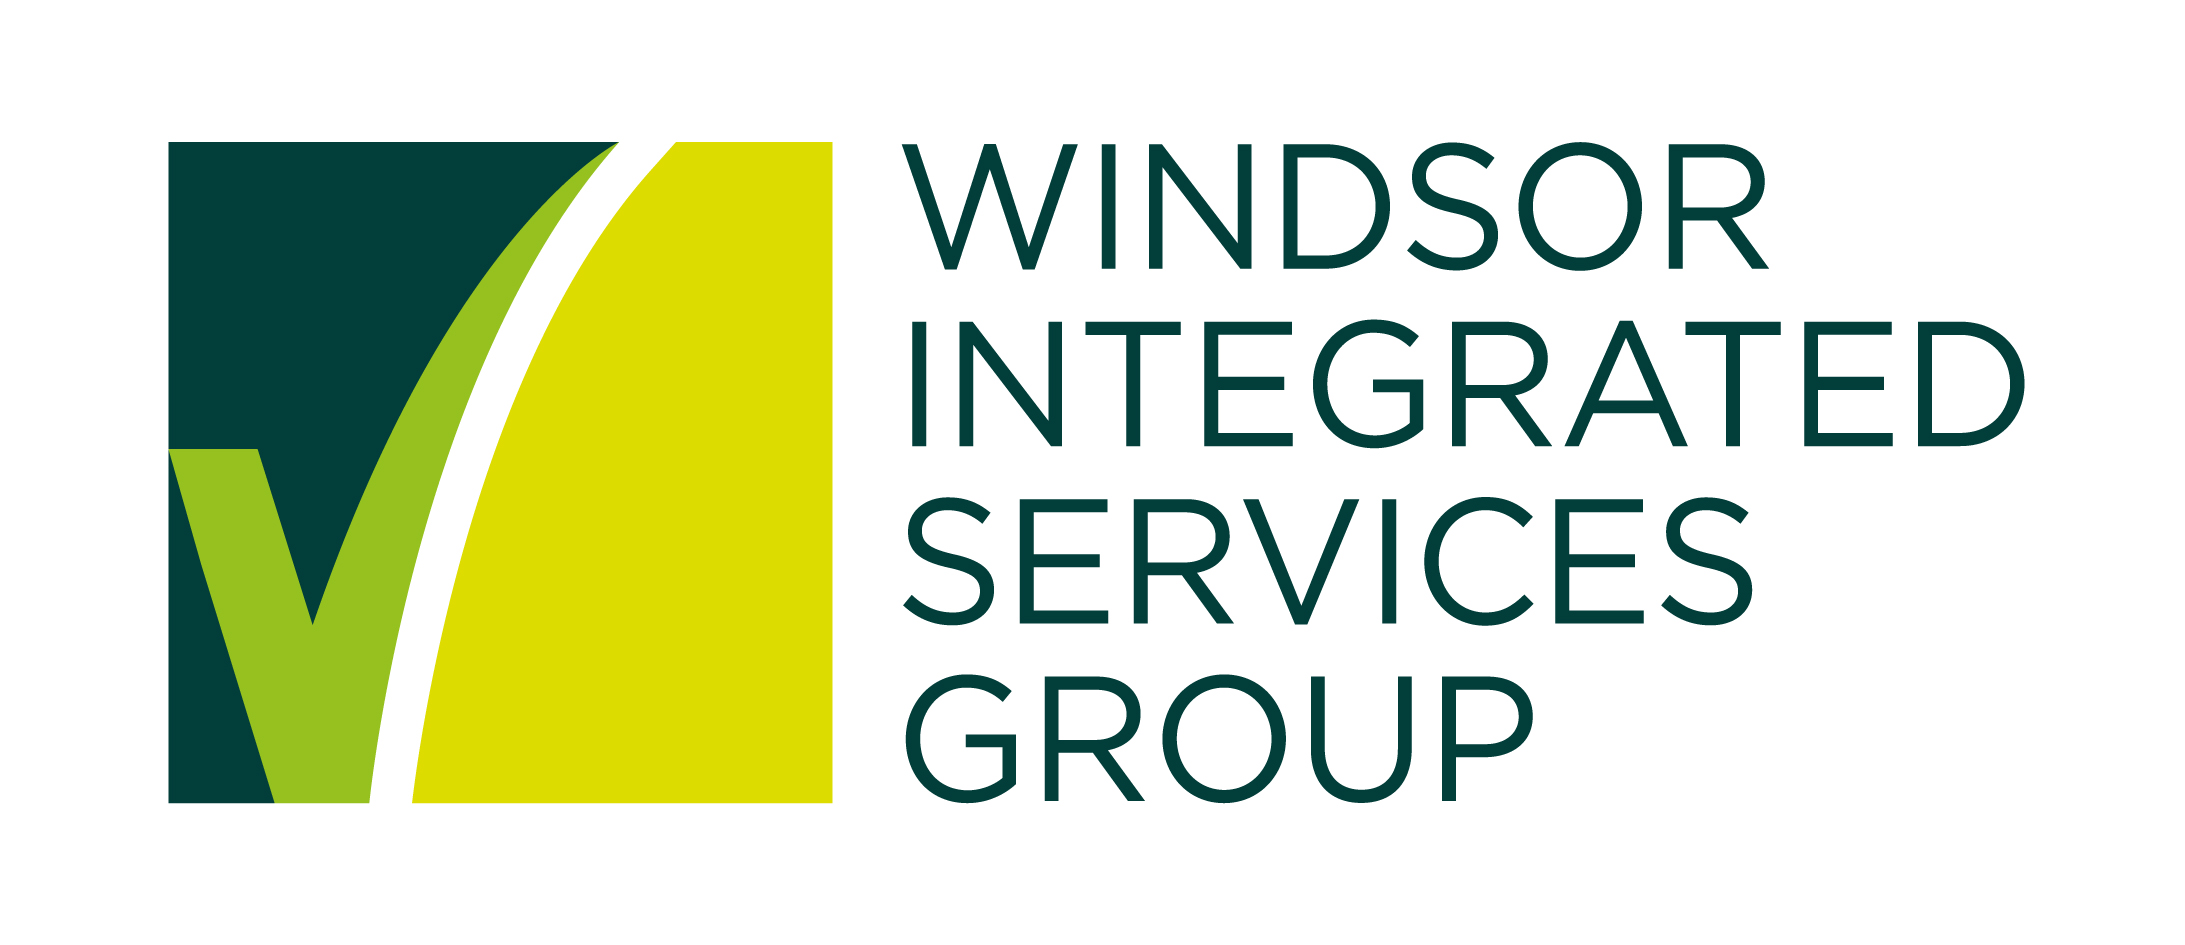 Windsor Integrated Services Group logo